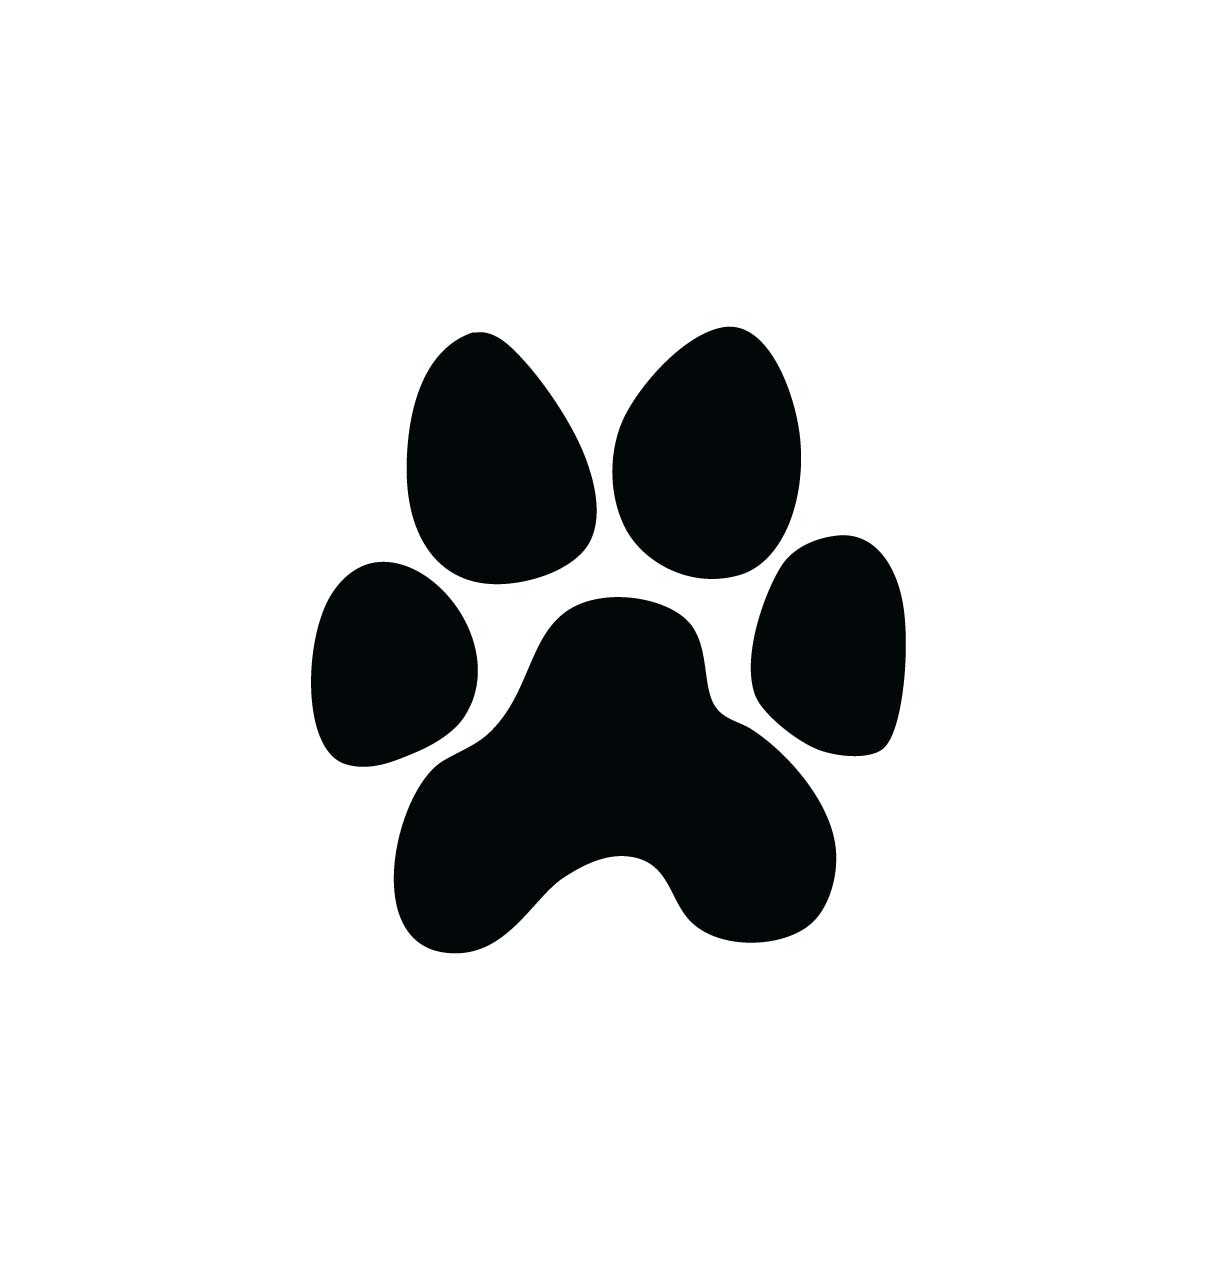 Paw print wildcats on dog paws paw tattoos and clip art image 2